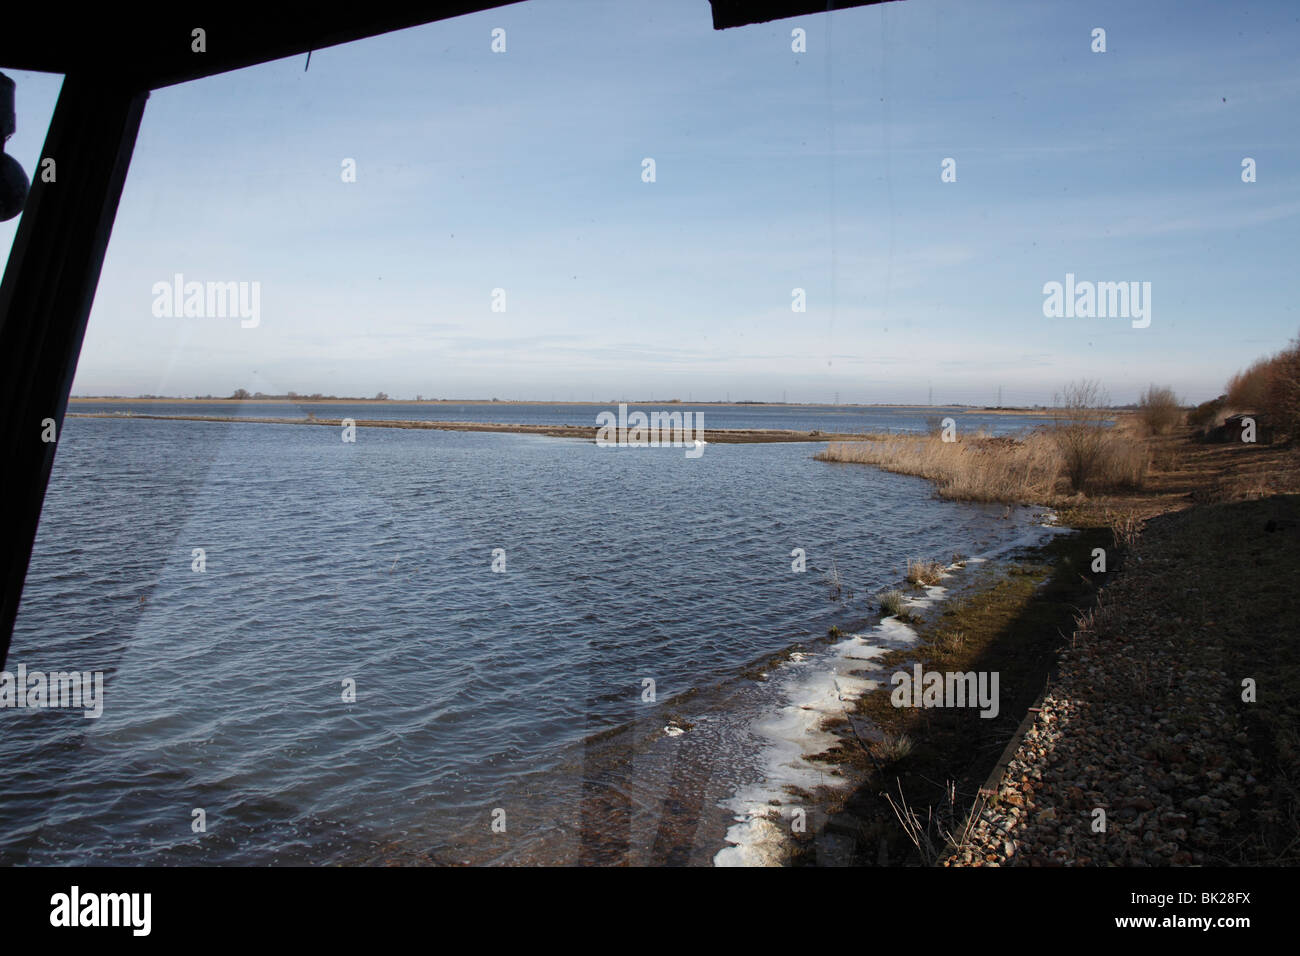 WWT Welney view from main observation hide - Stock Image